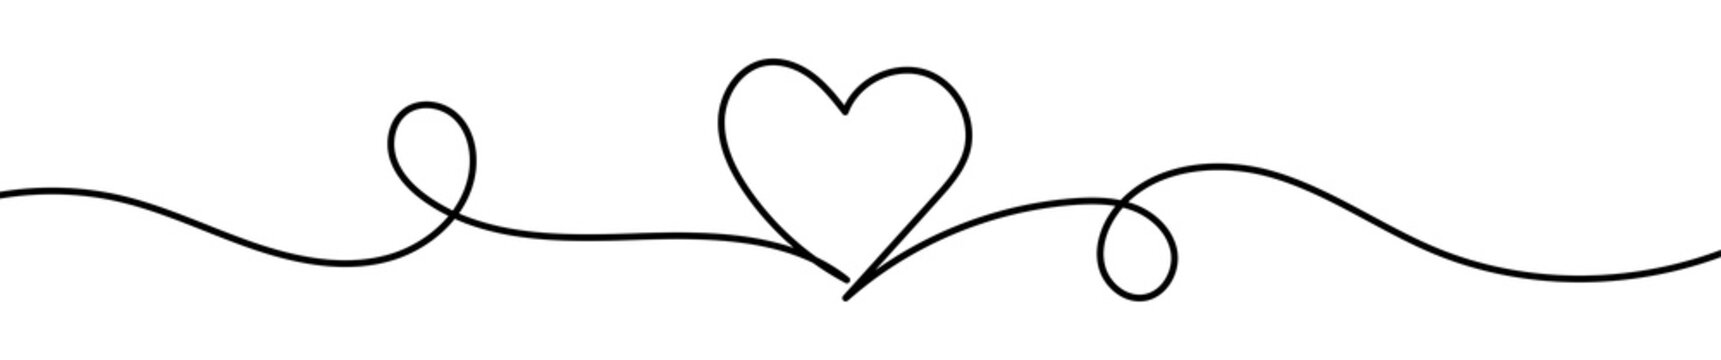 Heart line art drawing vector illustration. Continuous one line drawing heart. Abstract love symbol. Outline ribbon vector background. Art design template.